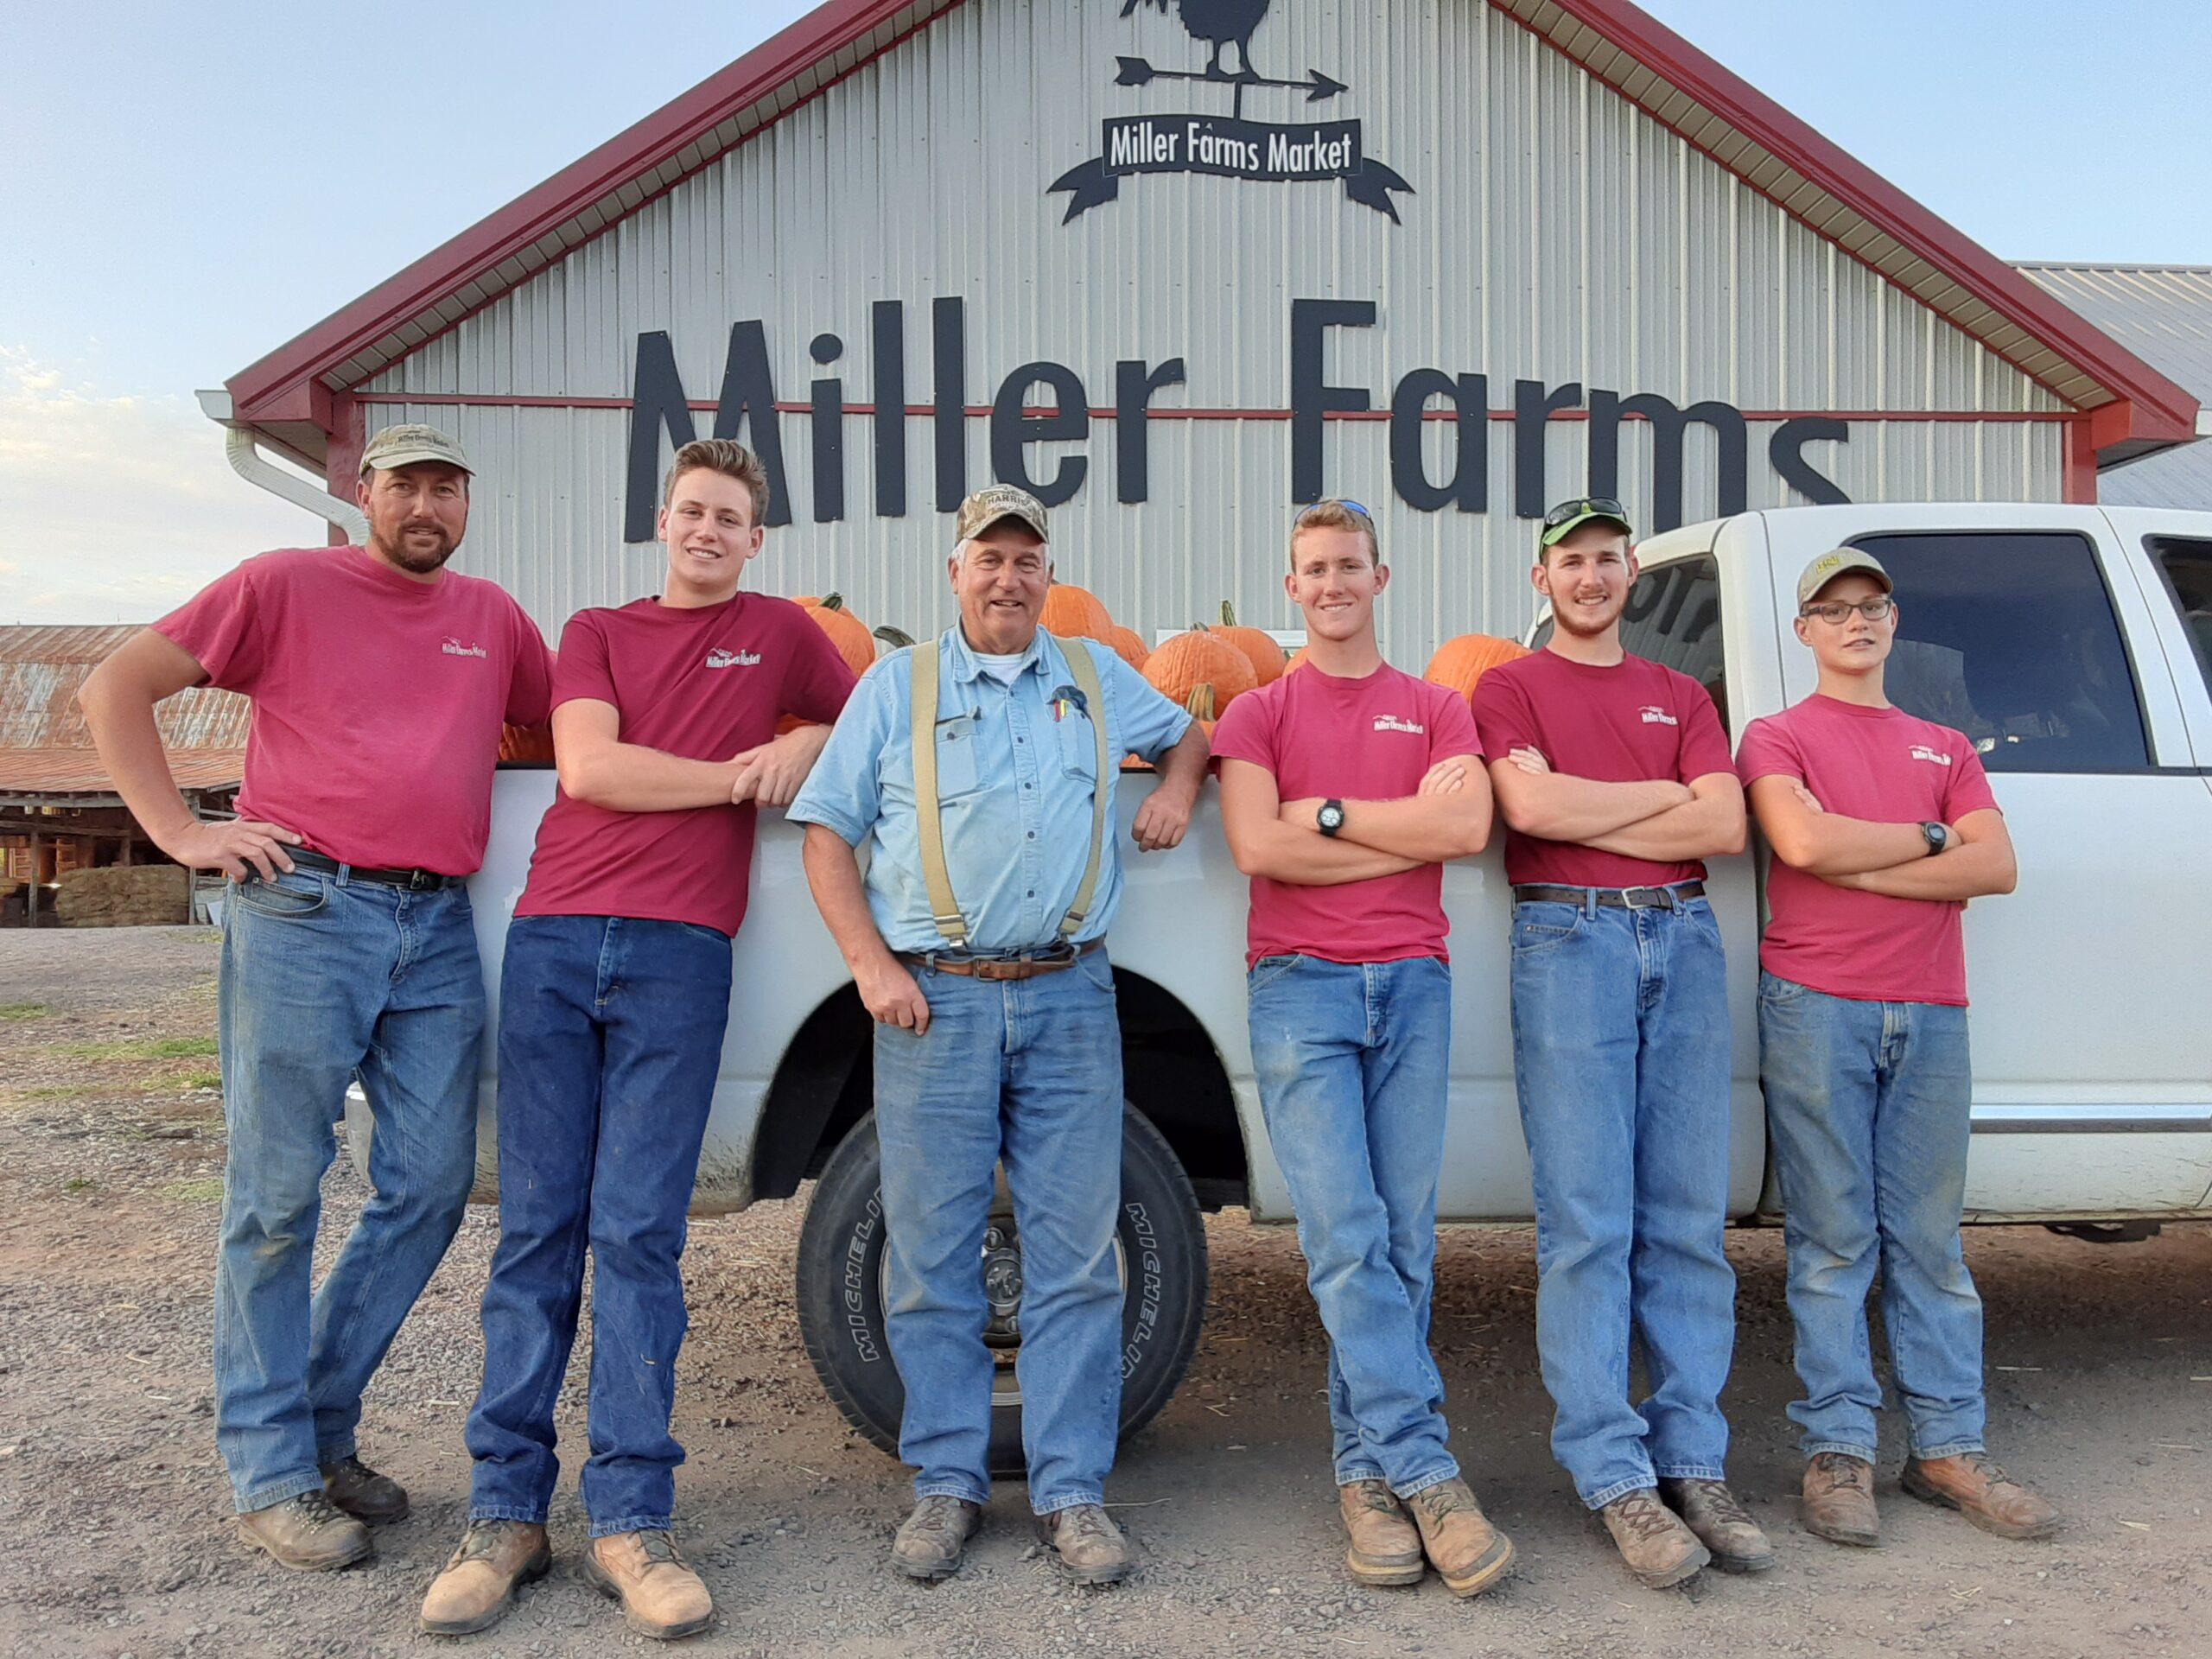 Who's your farmer?  Let Miller Farms be your farmer this year!  Join our CSA and get to know the Millers better!